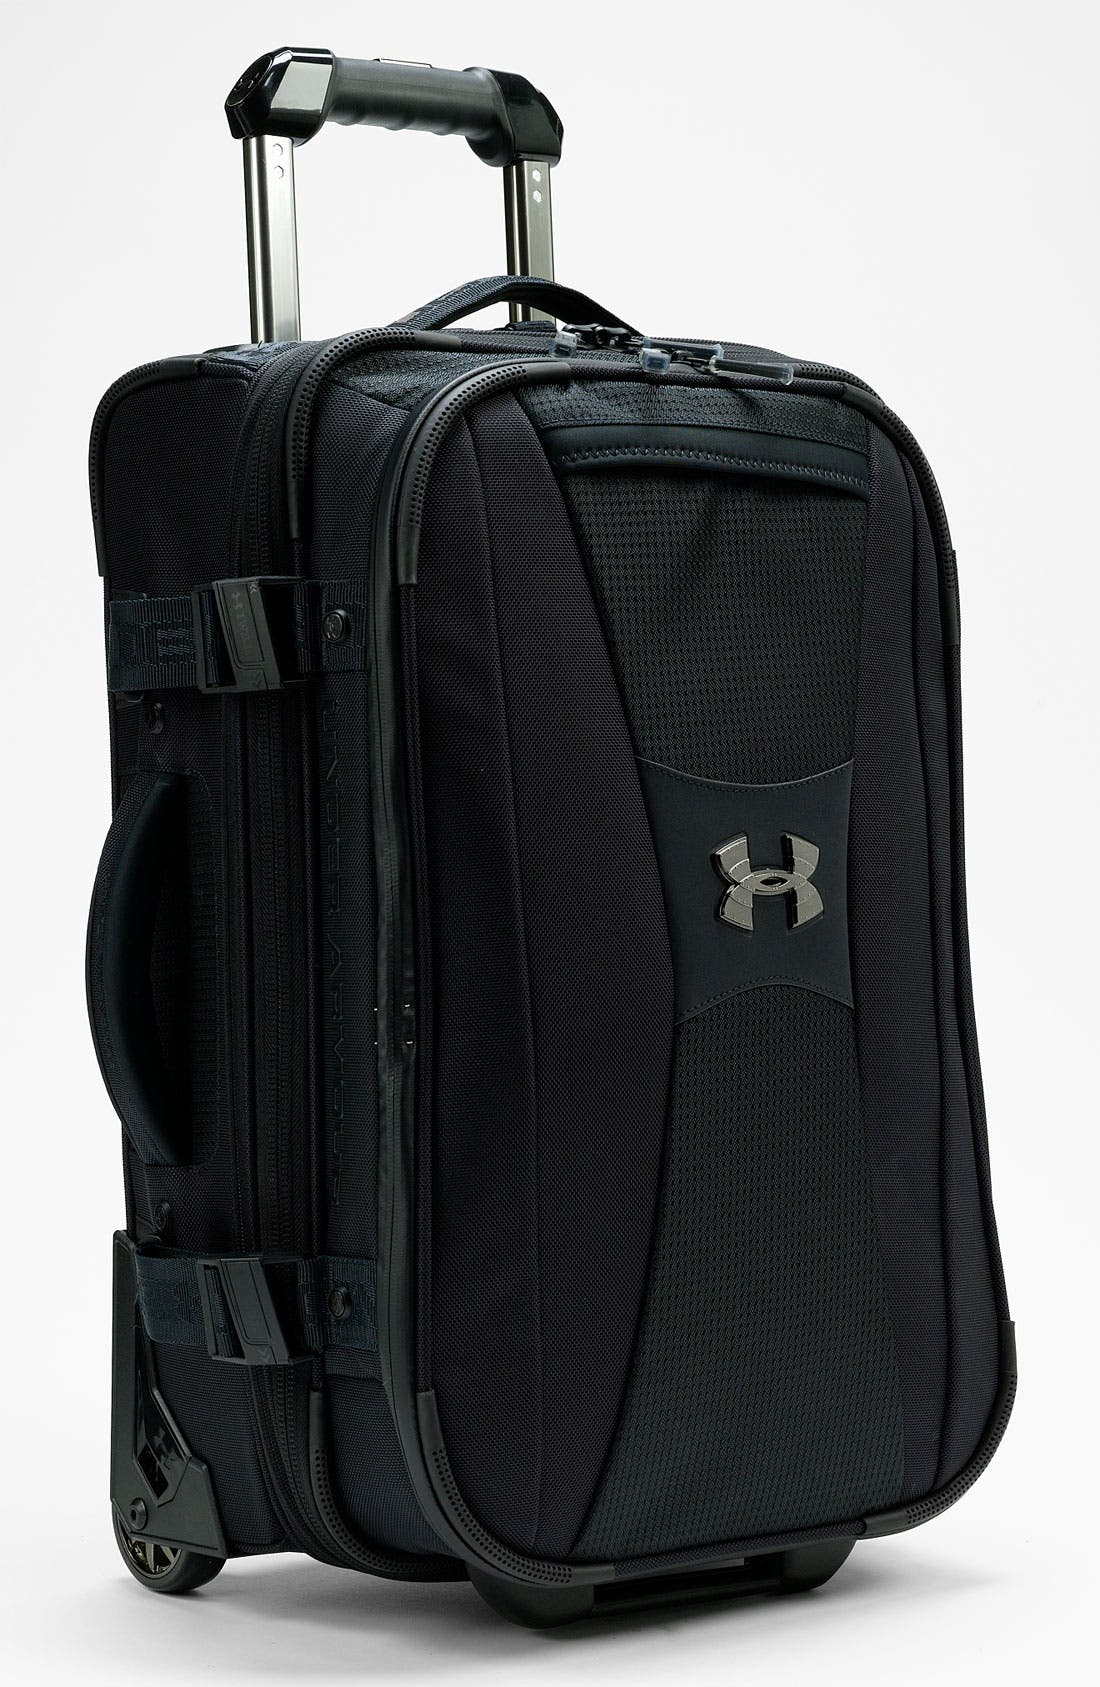 Main Image - Under Armour 'Elite' Rolling Carry-On